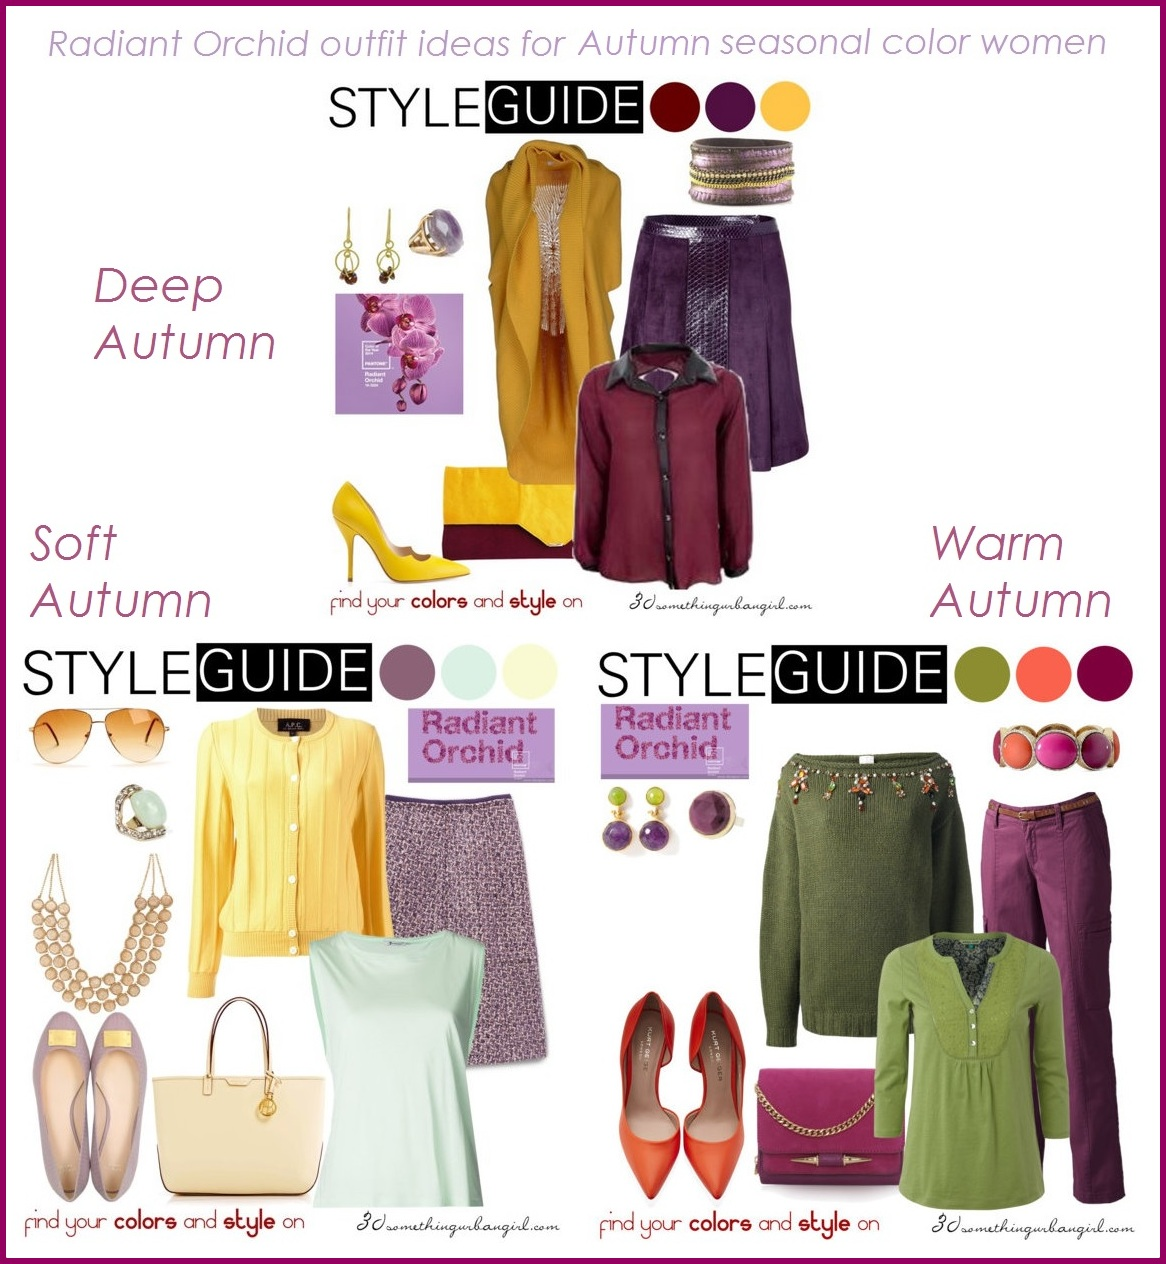 Radiant Orchid outfit ideas for Autumn seasonal color women